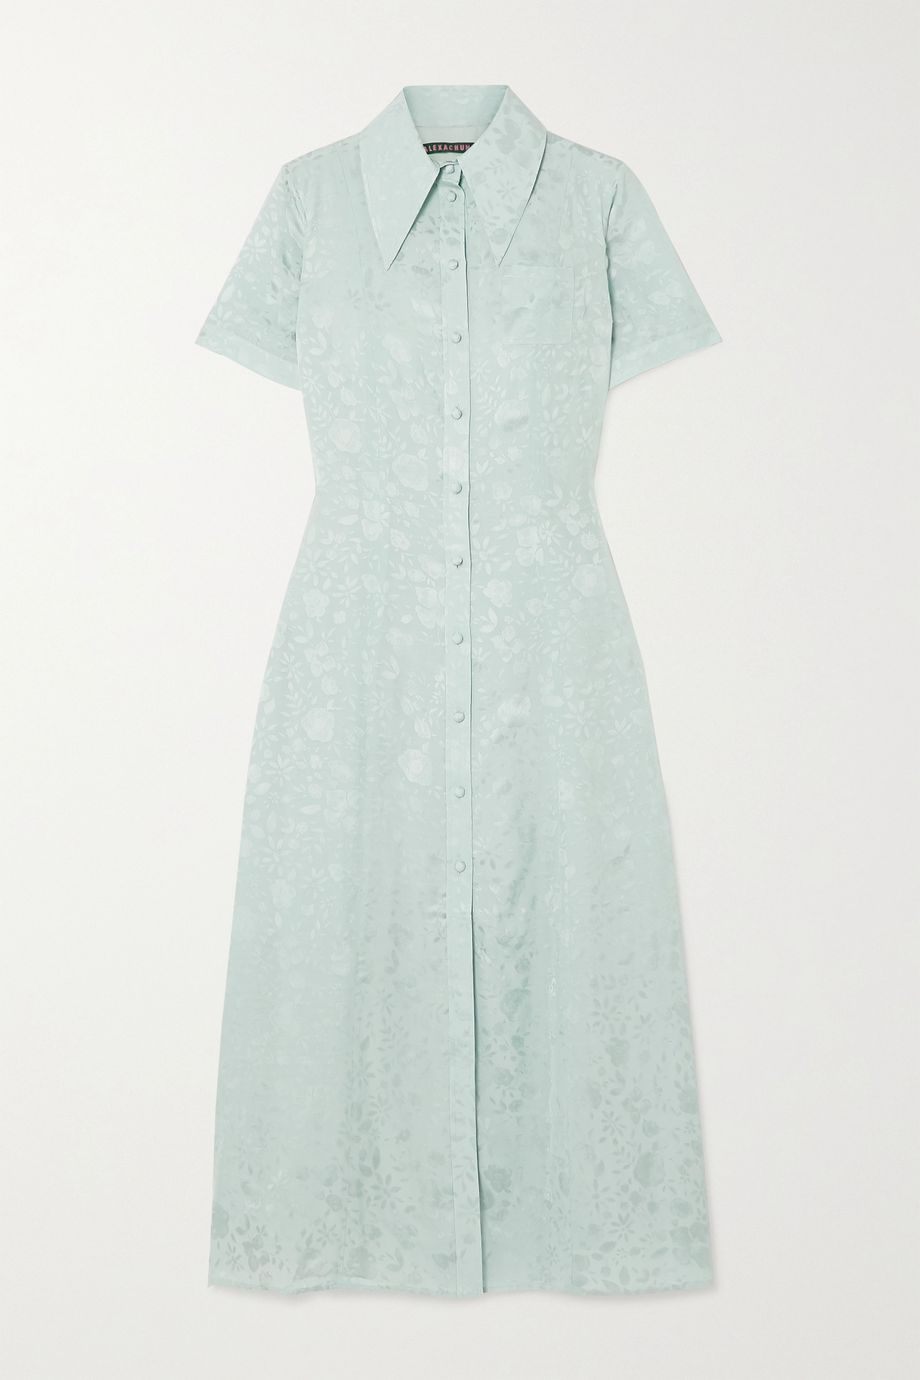 ALEXACHUNG Satin-jacquard midi shirt dress